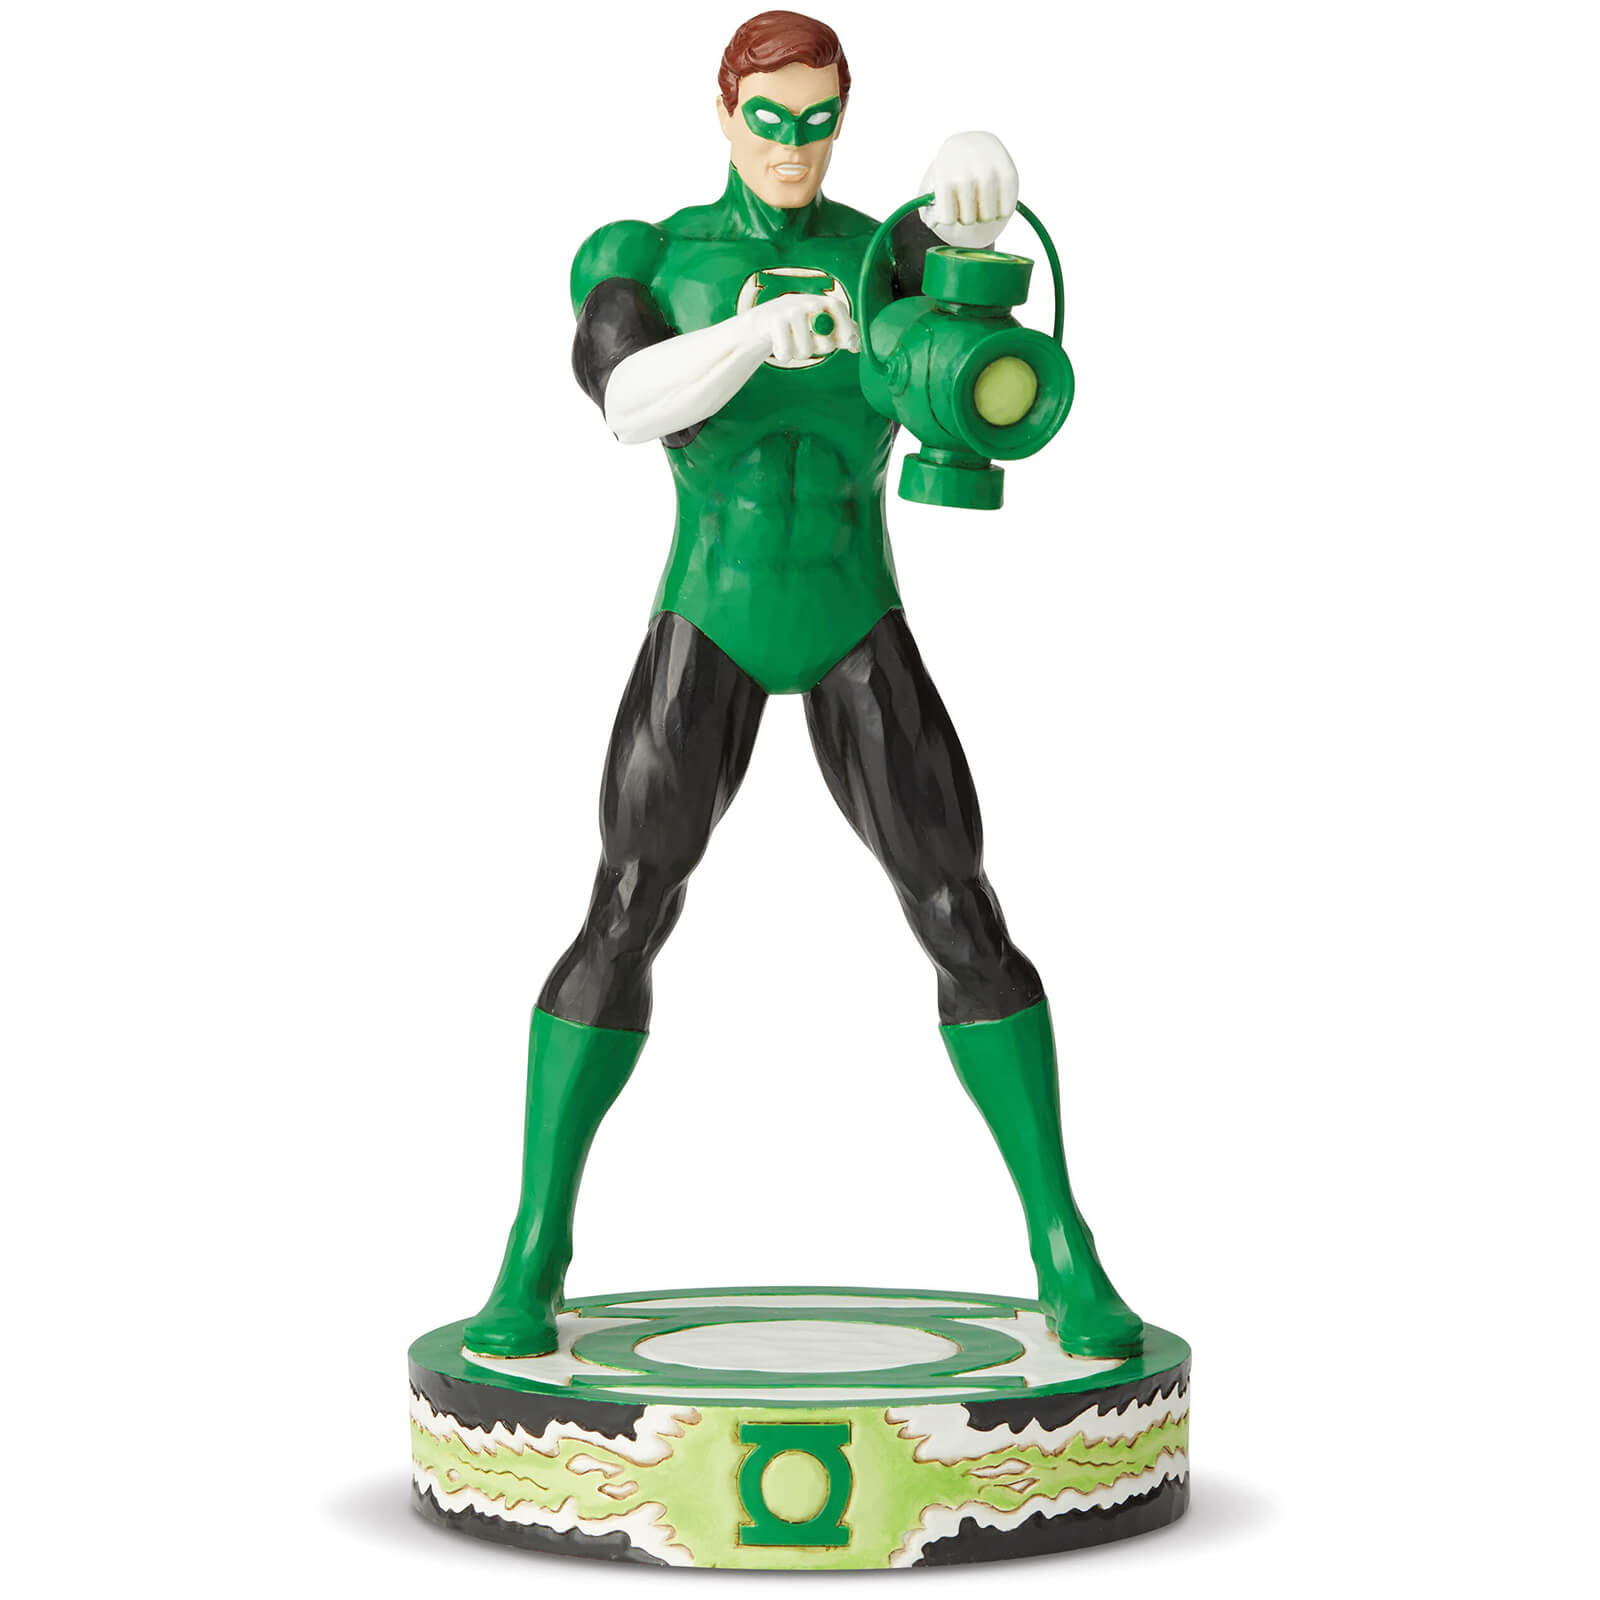 Image of DC Comics by Jim Shore Green Lantern Silver Age Figurine 22.0cm